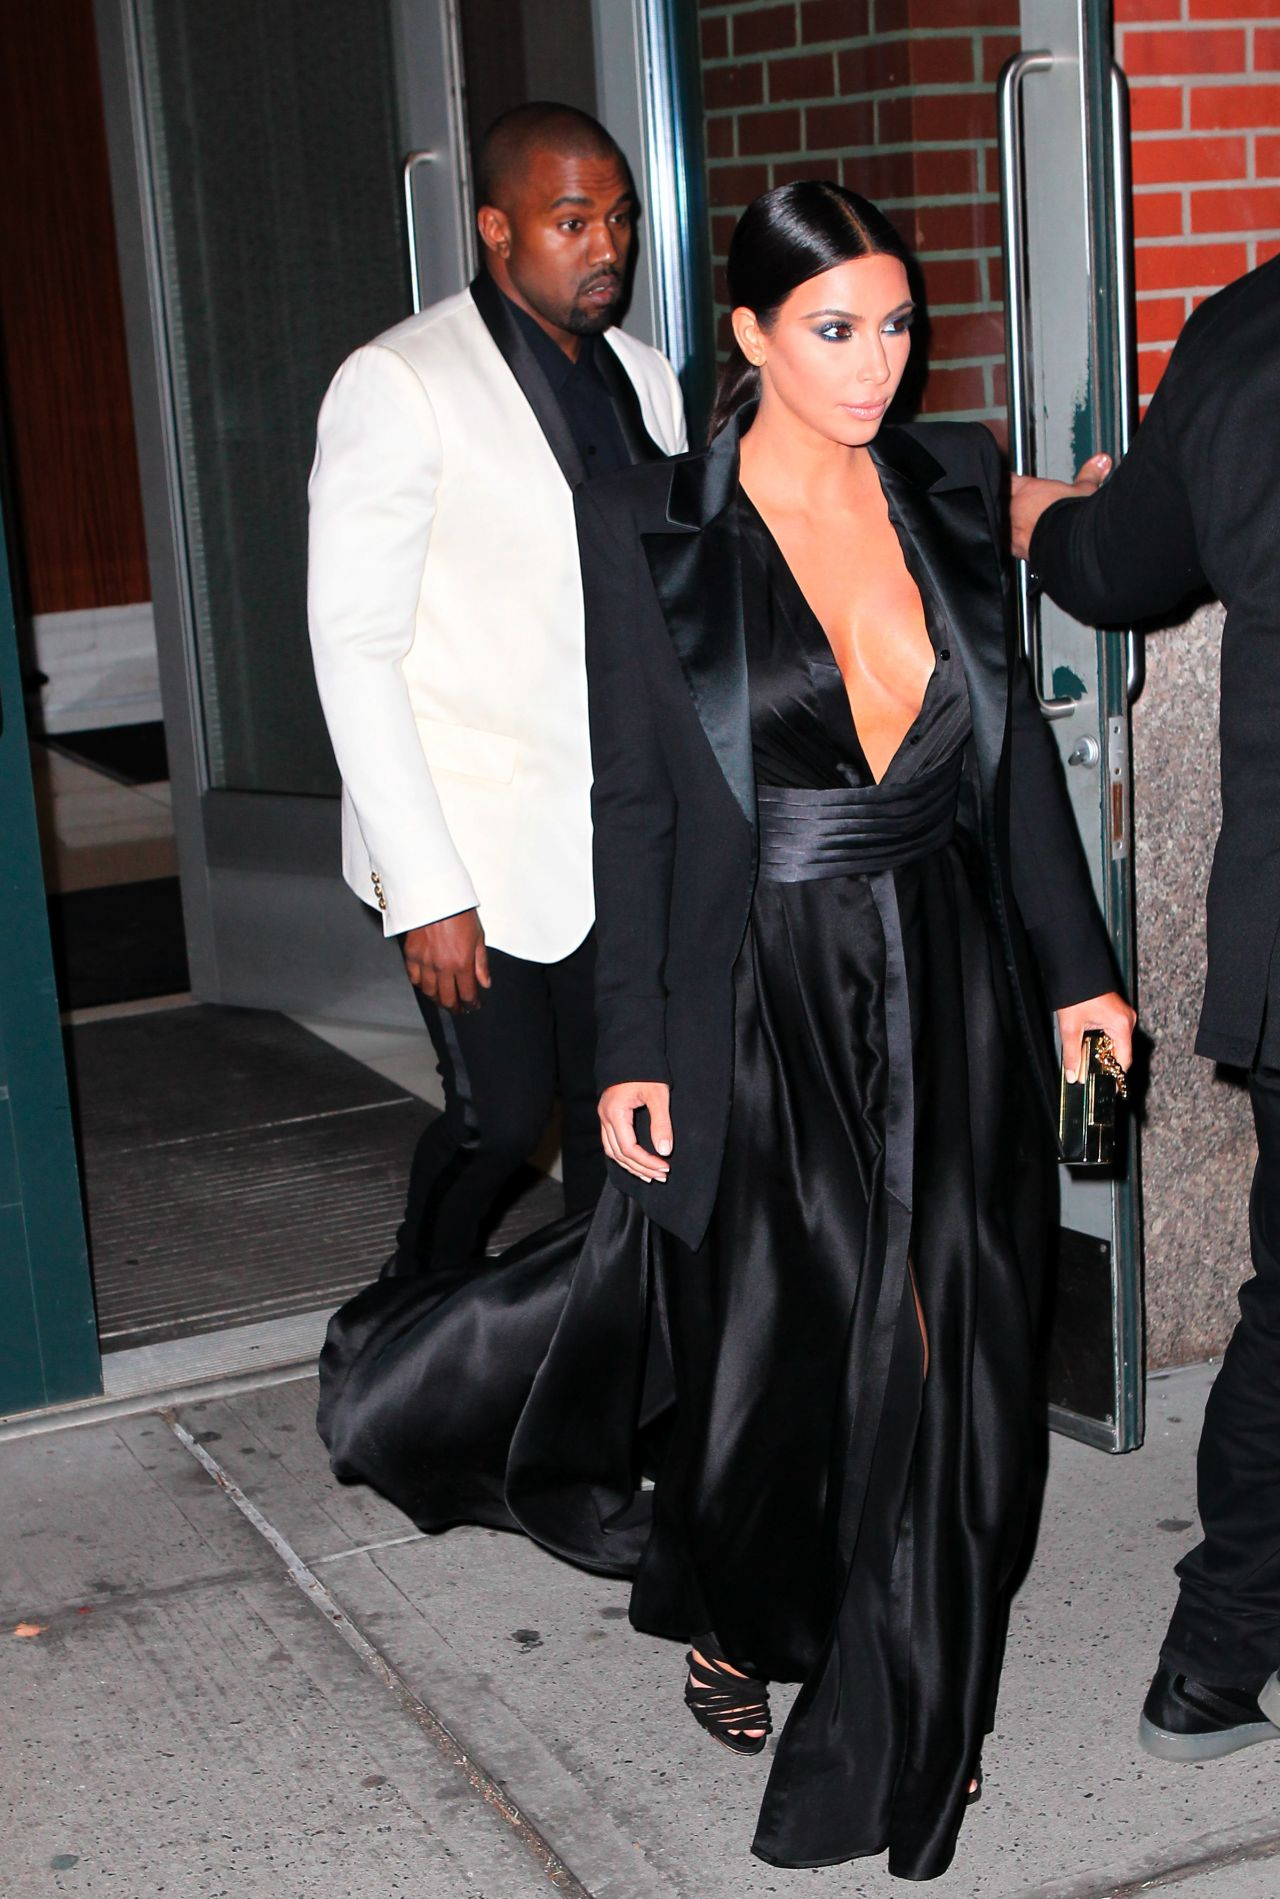 Kim Kardashian 2015 Celebrity Photos Style Out To Dinner In Nyc January